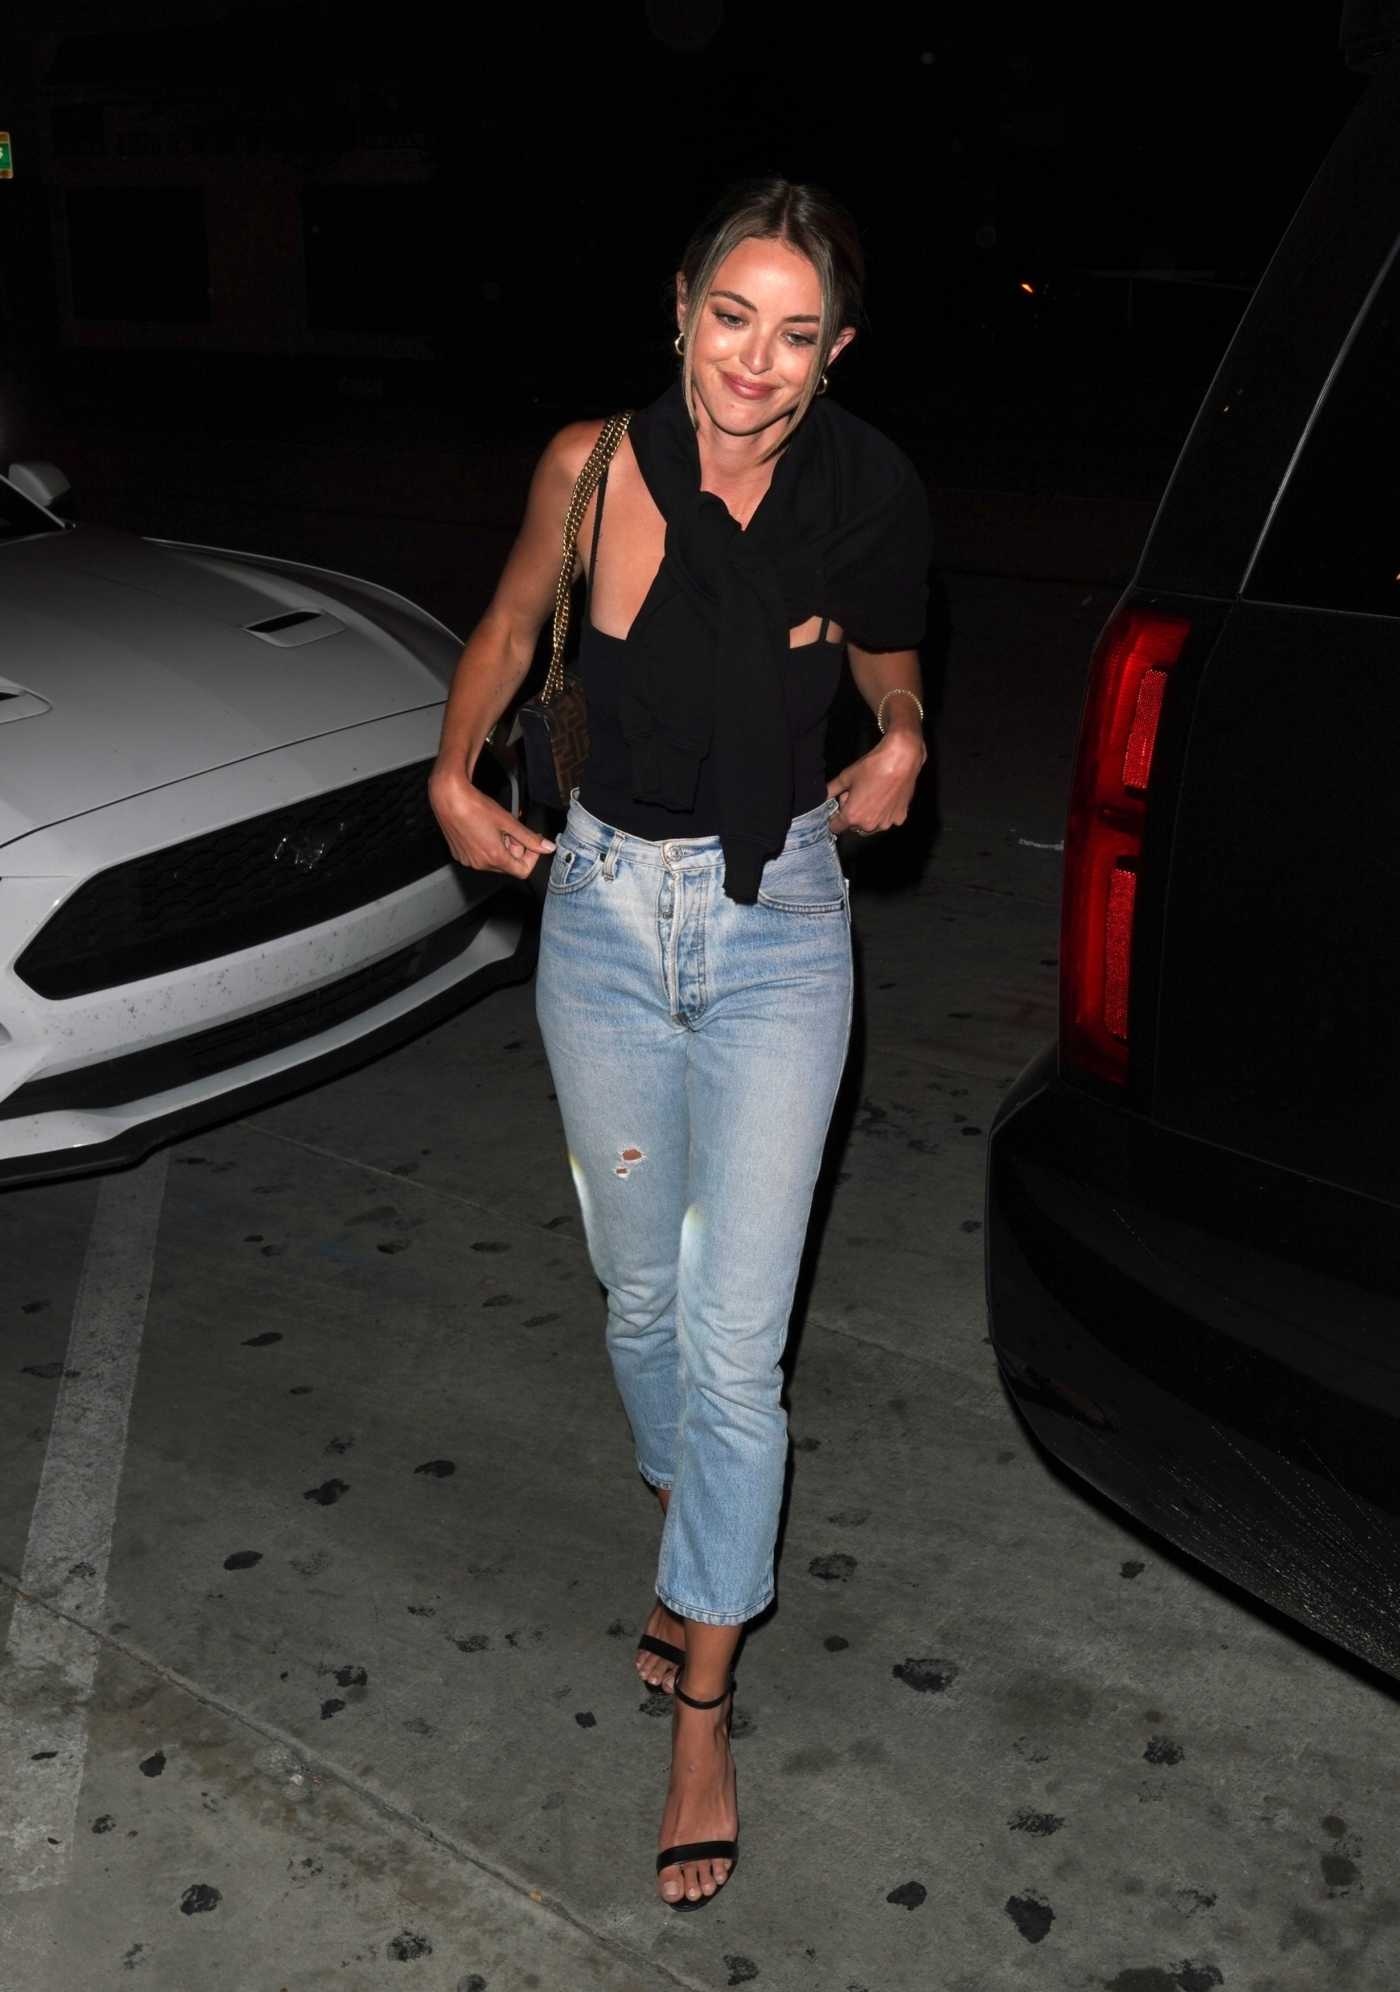 Kaitlynn Carter in a Black Top Arrives at Catch Restaurant in West Hollywood 06/13/2020